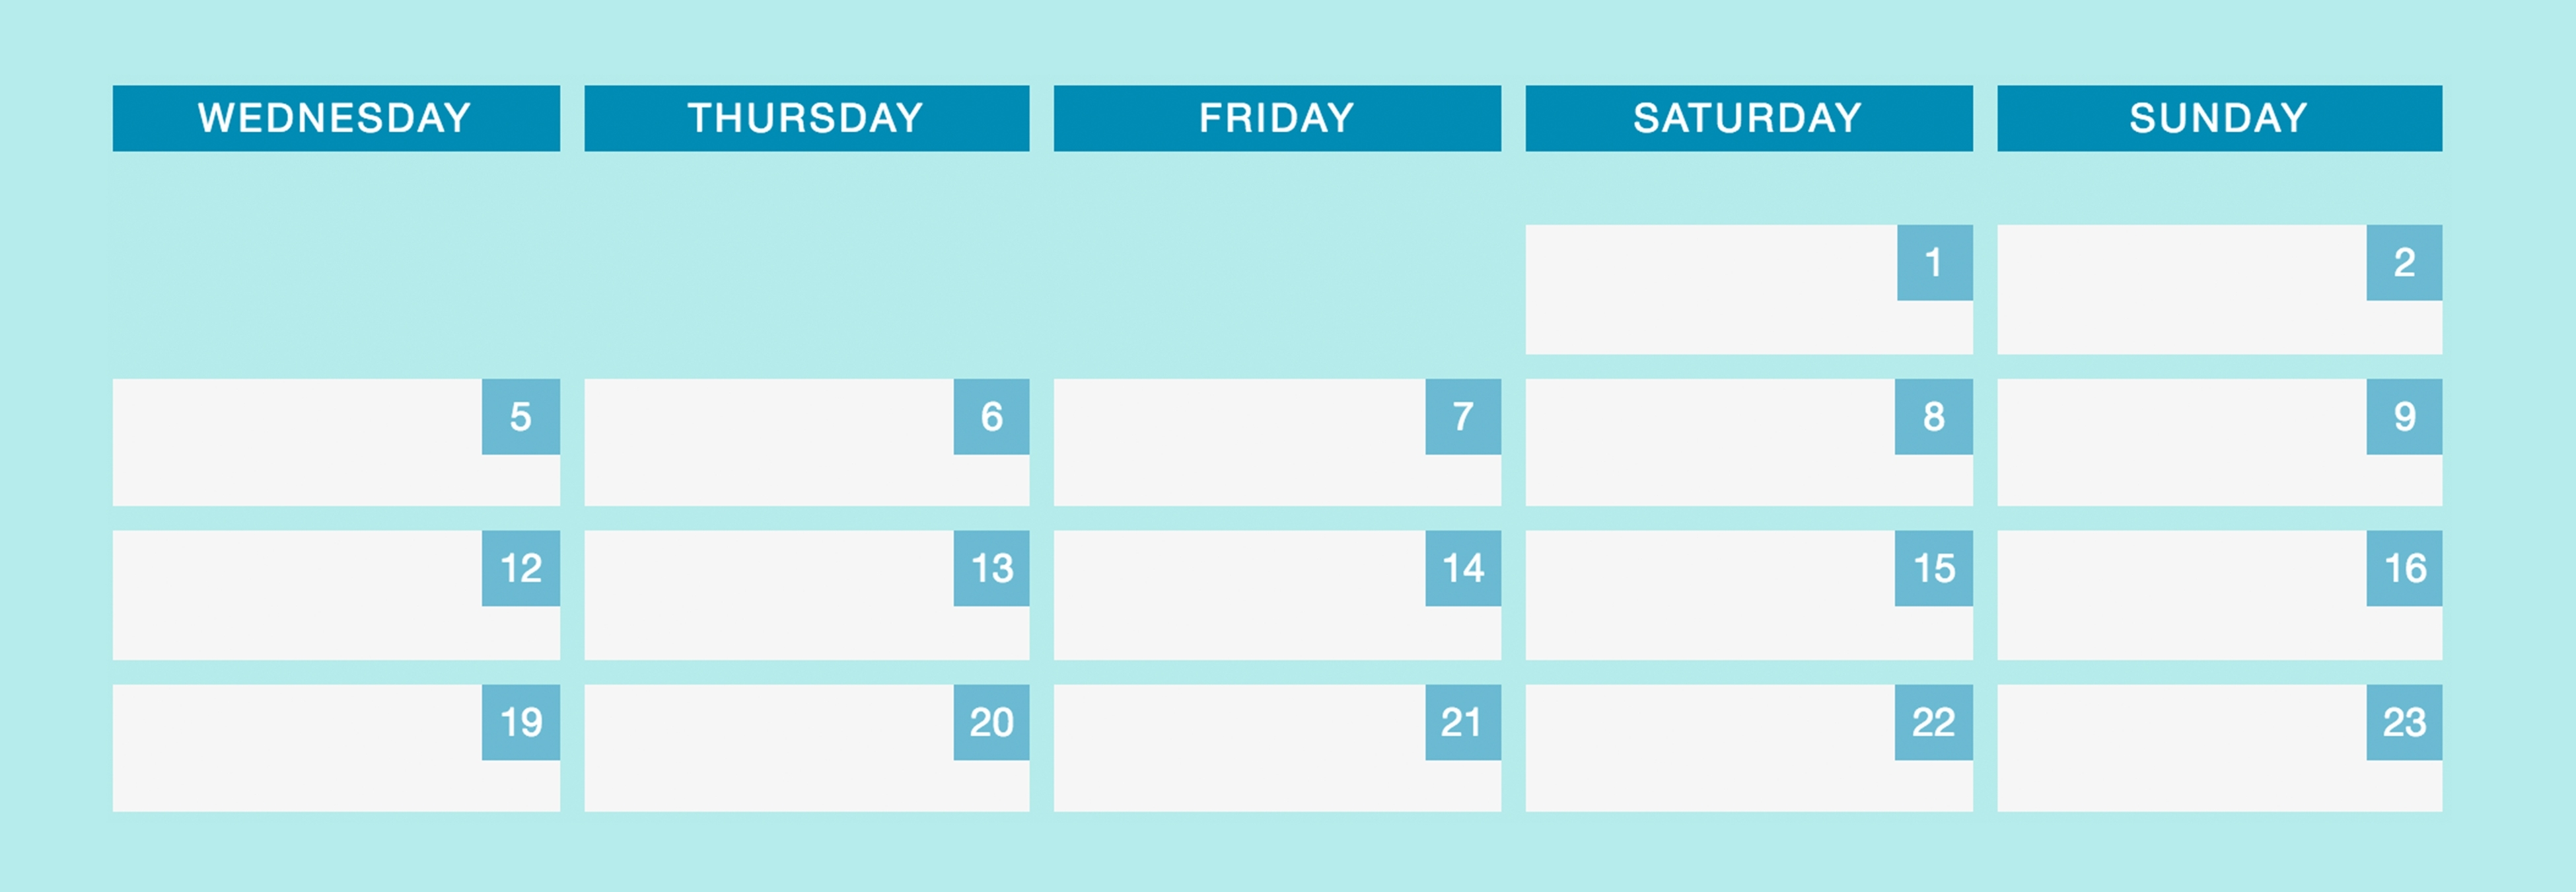 Making A Responsive Calendar For Dynamic Dates Using Flexbox